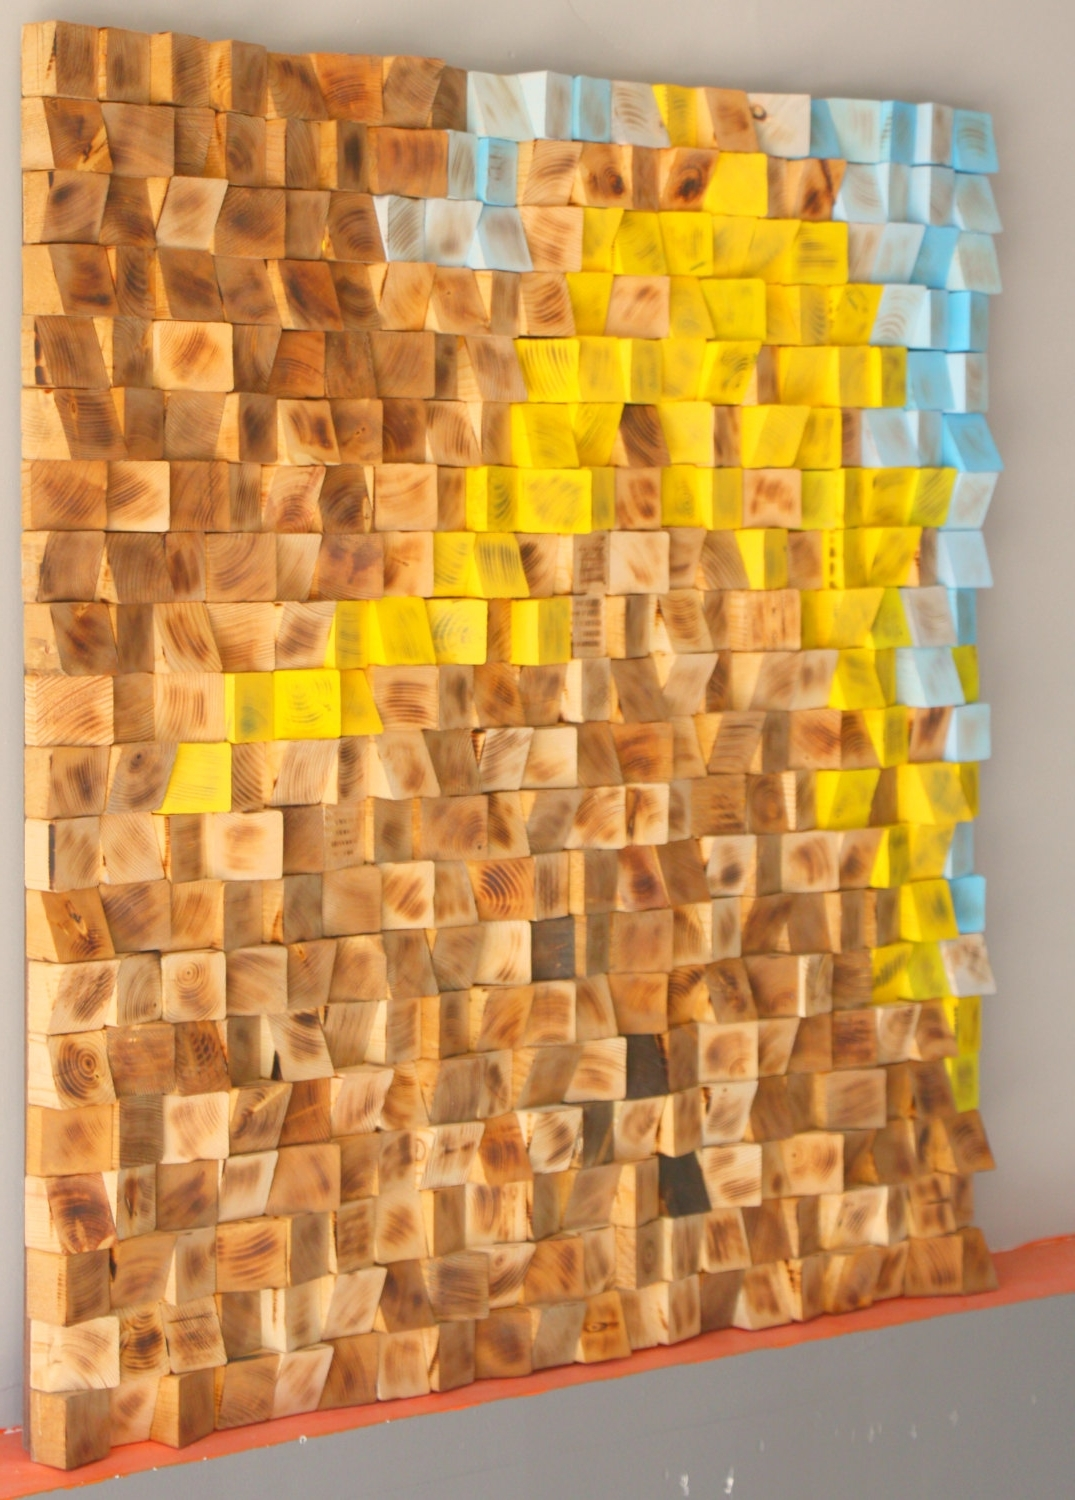 3D Wall Art Etsy Inside Popular Reclaimed Wood Wall Art, Wood Mosaic, Geometric Art, Wood Wall Art (Gallery 6 of 15)